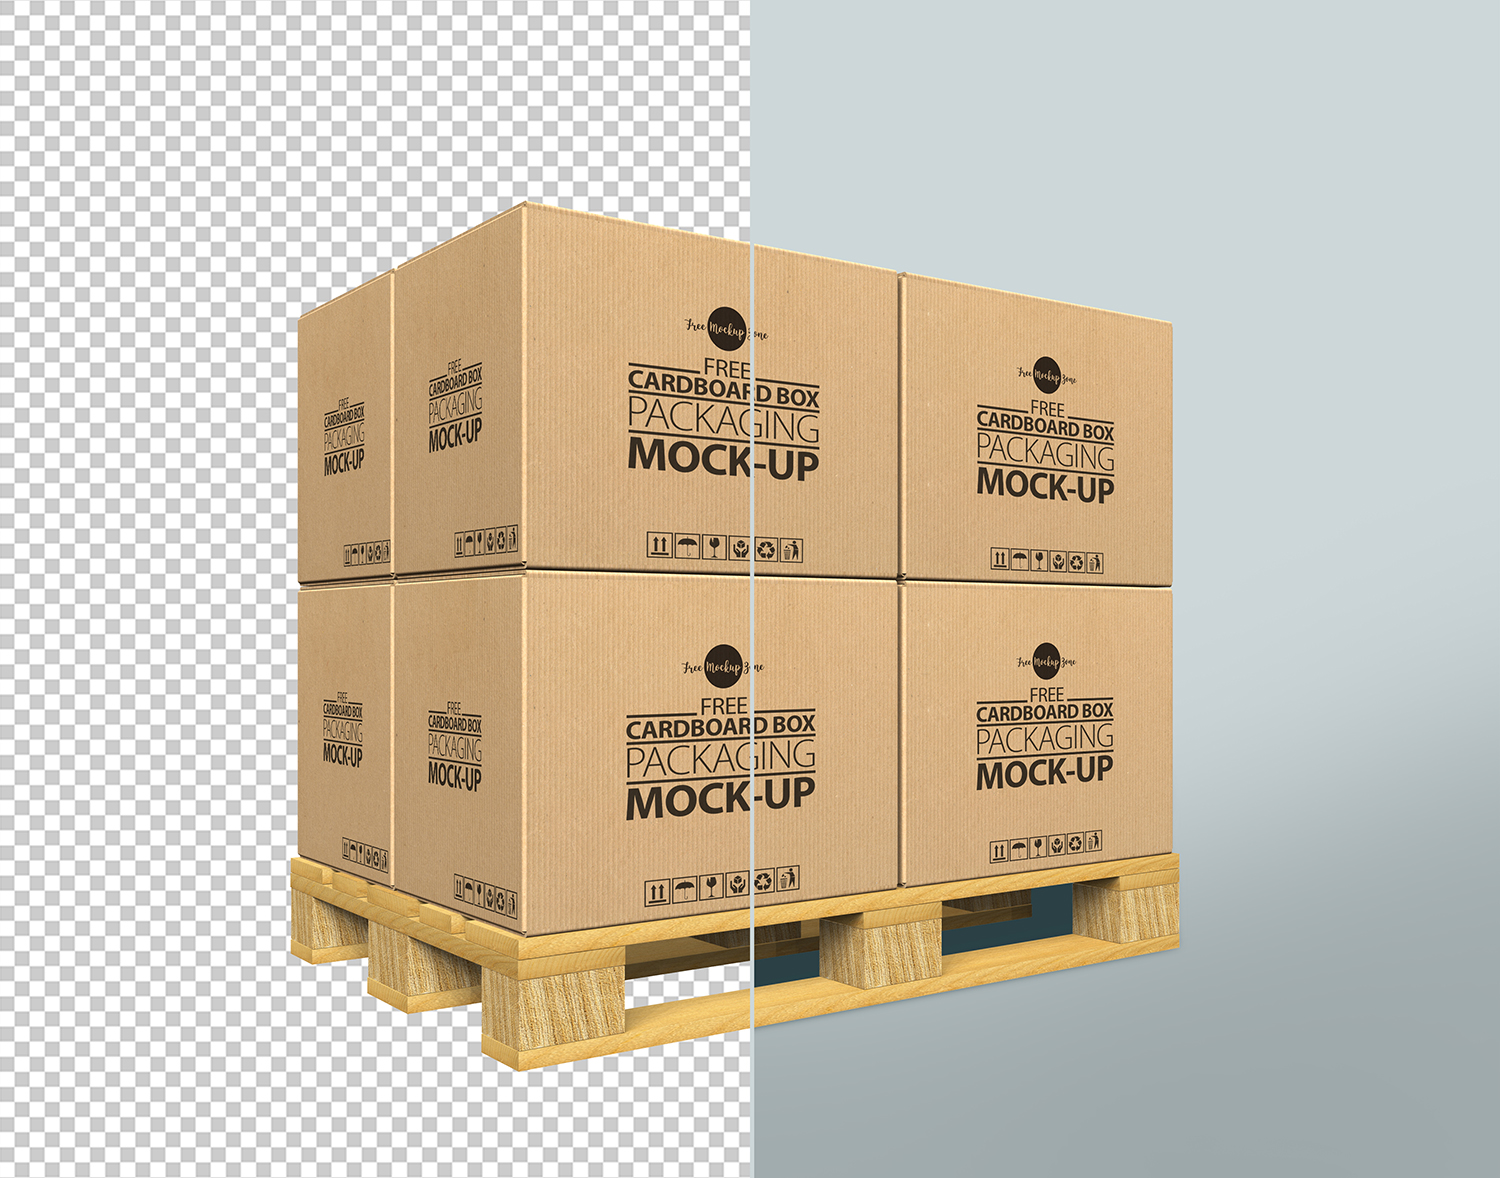 Free-Cardboard-Box-Mock-up-PSD-3